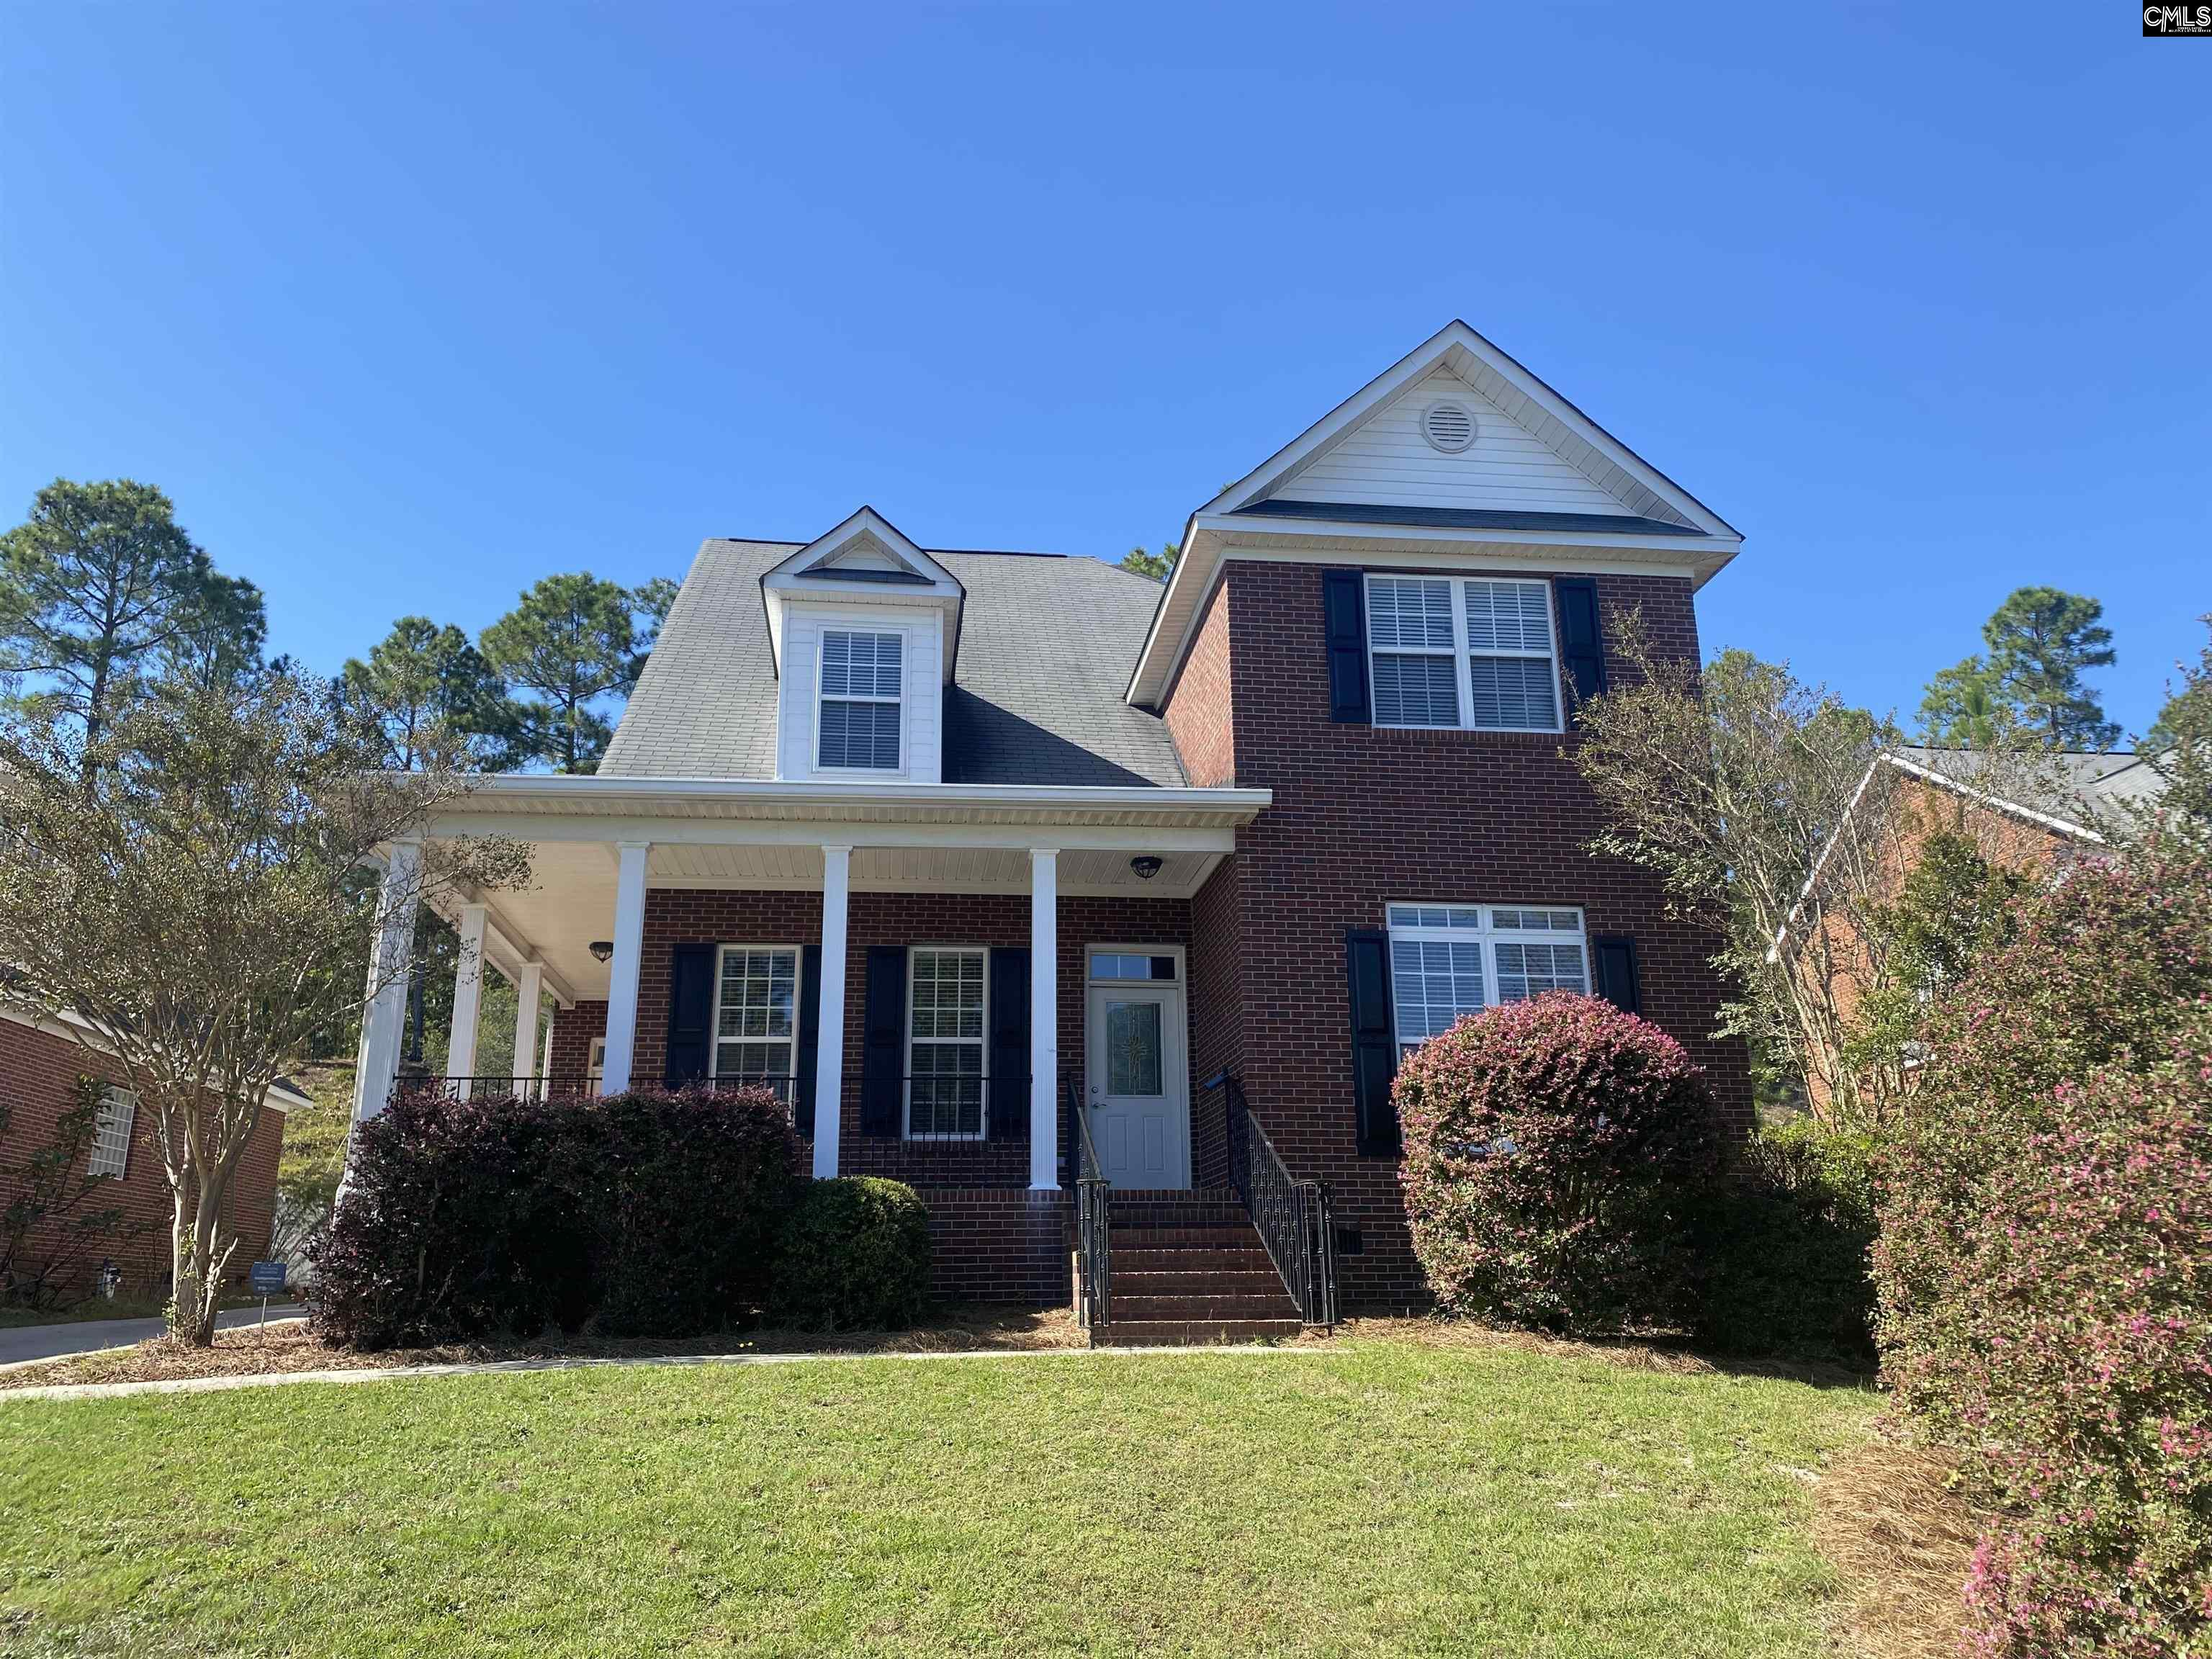 Large all-brick home with two car garage in terrific location!! New carpet and paint! Master bedroom on main floor. Formal dining room with hardwoods. Screened-in back porch. Wrap around front porch with tile floors. Beautiful home!!